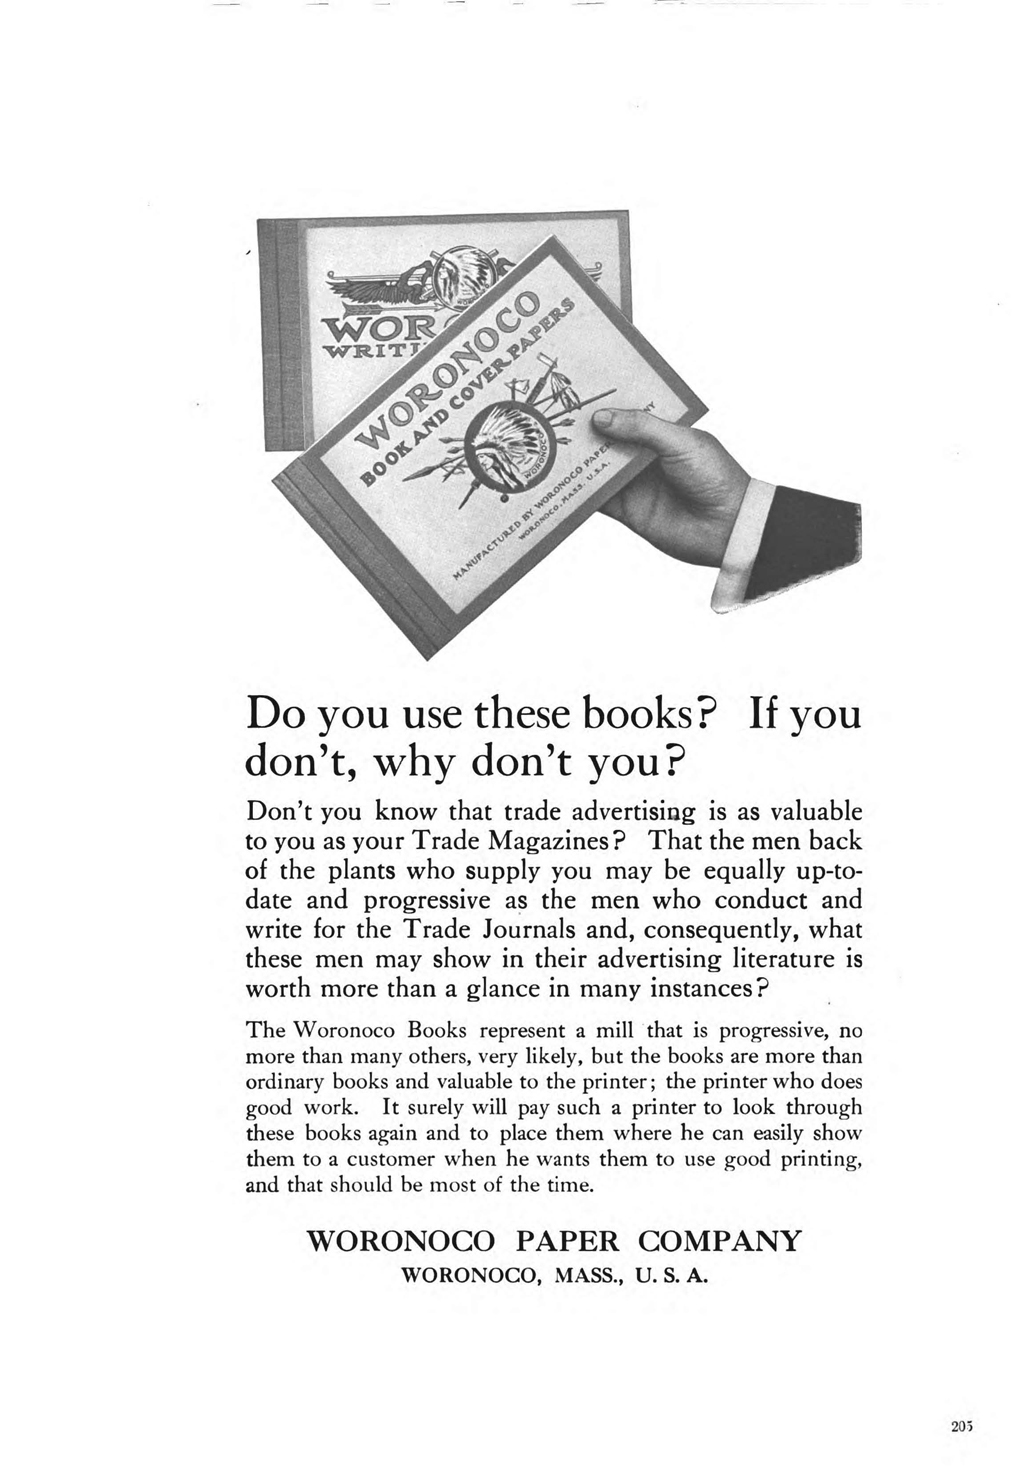 Advertisement for Woronoco sample books in The Inland Printer (May 1910), p. 205.